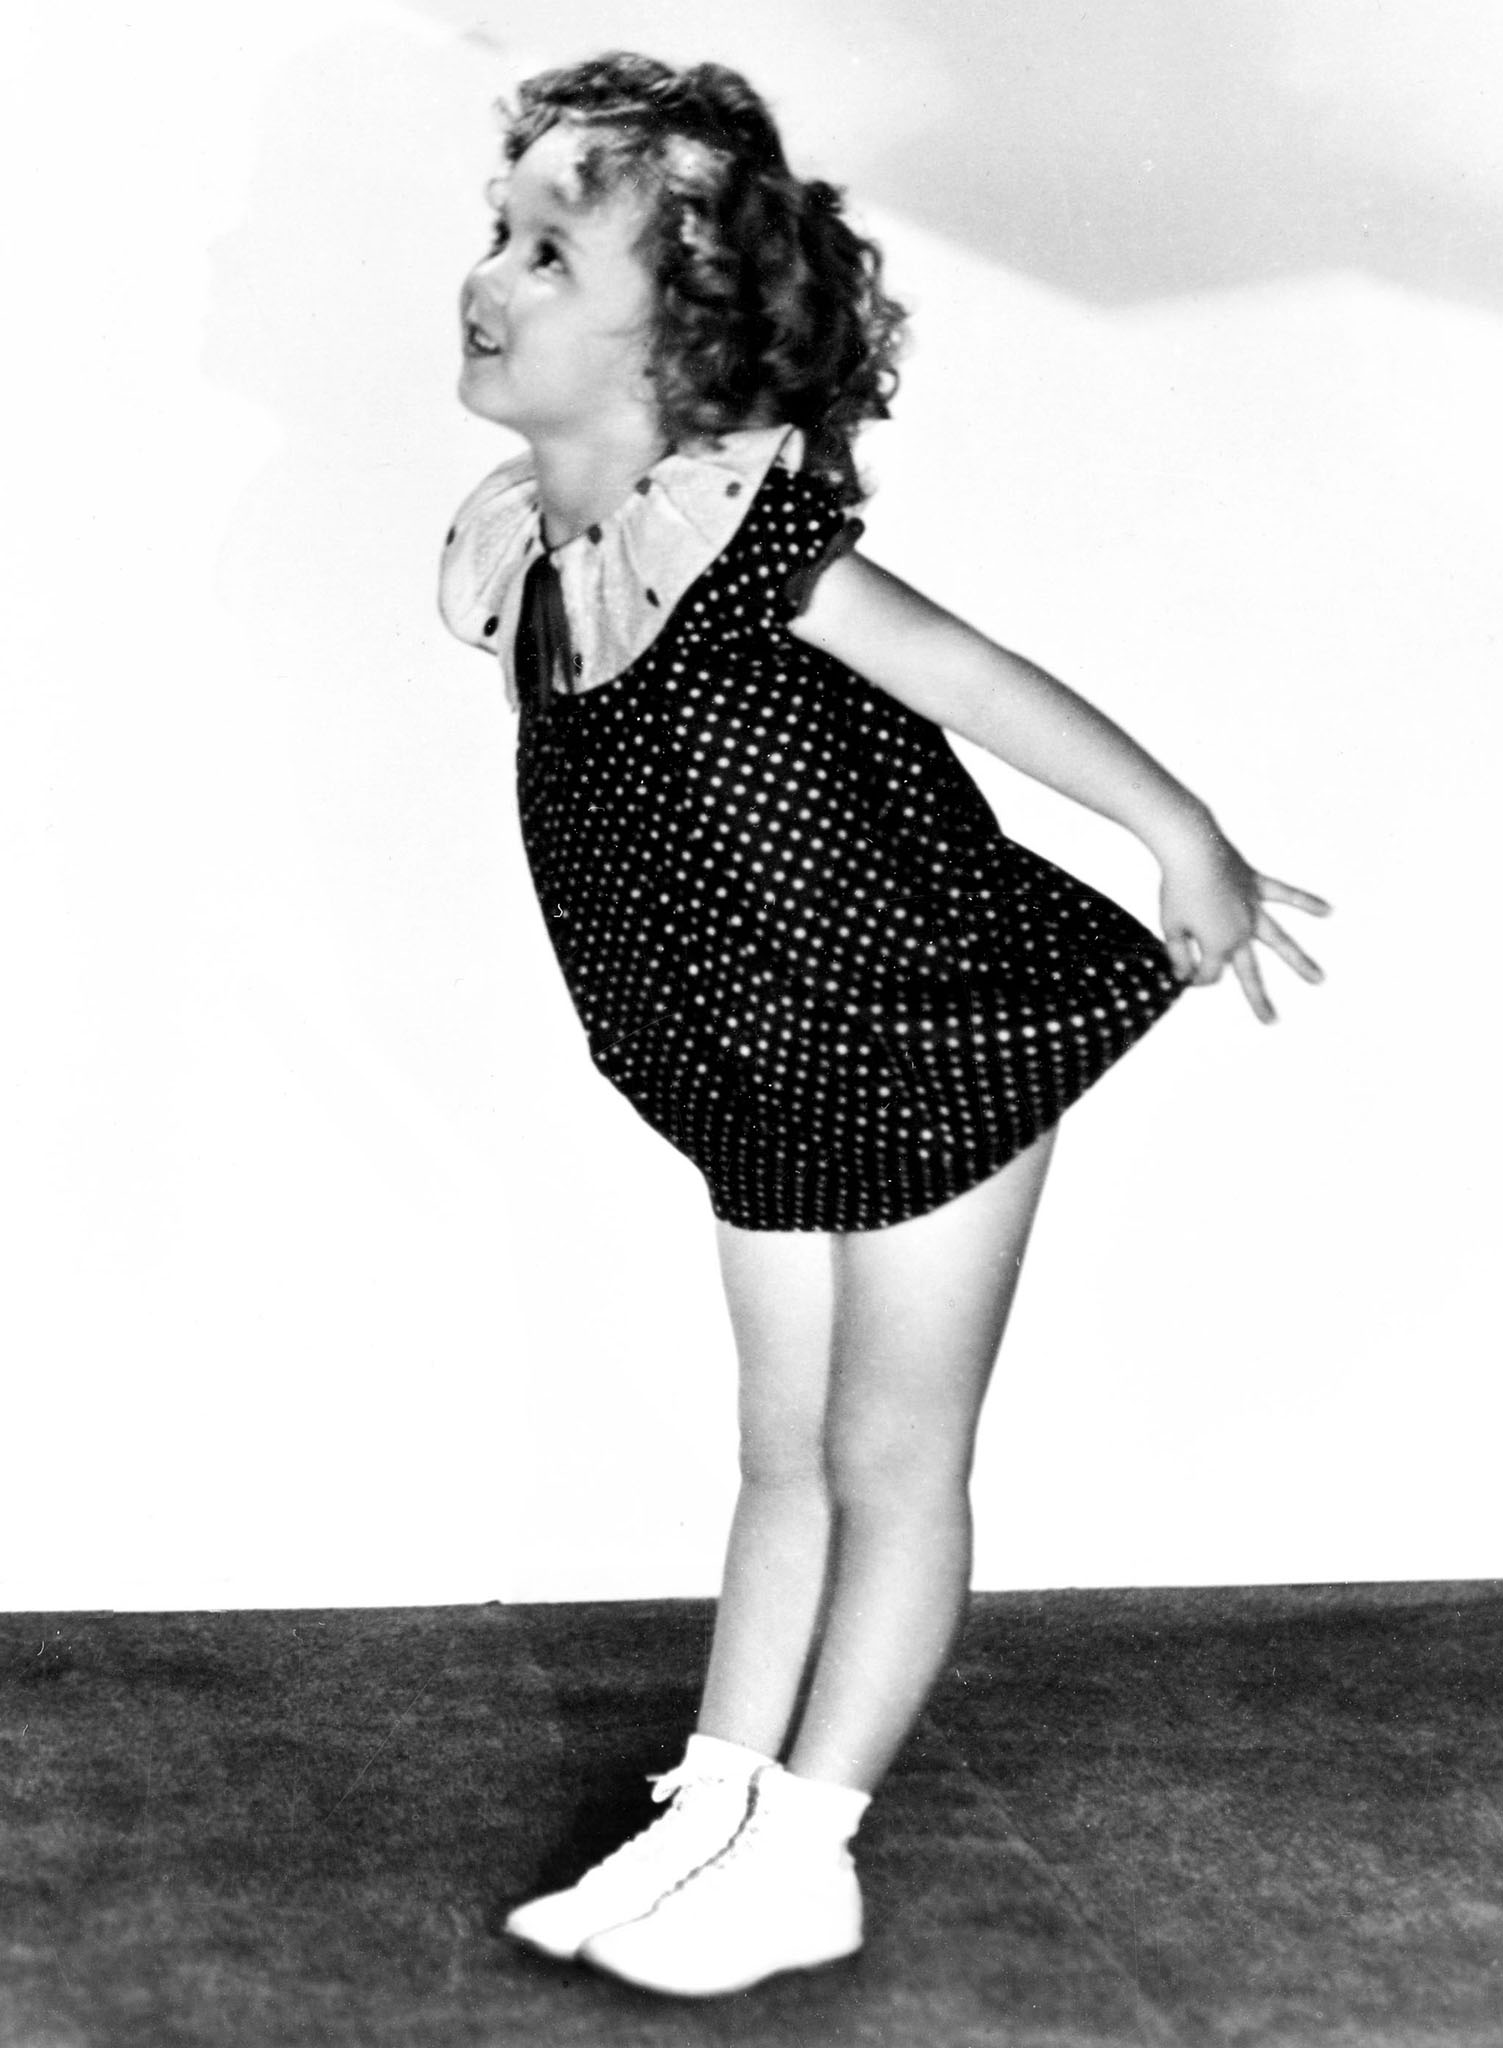 Mary Janes boomed in the 1930s after little Shirley Temple wore a pair in Baby, Take a Bow movie